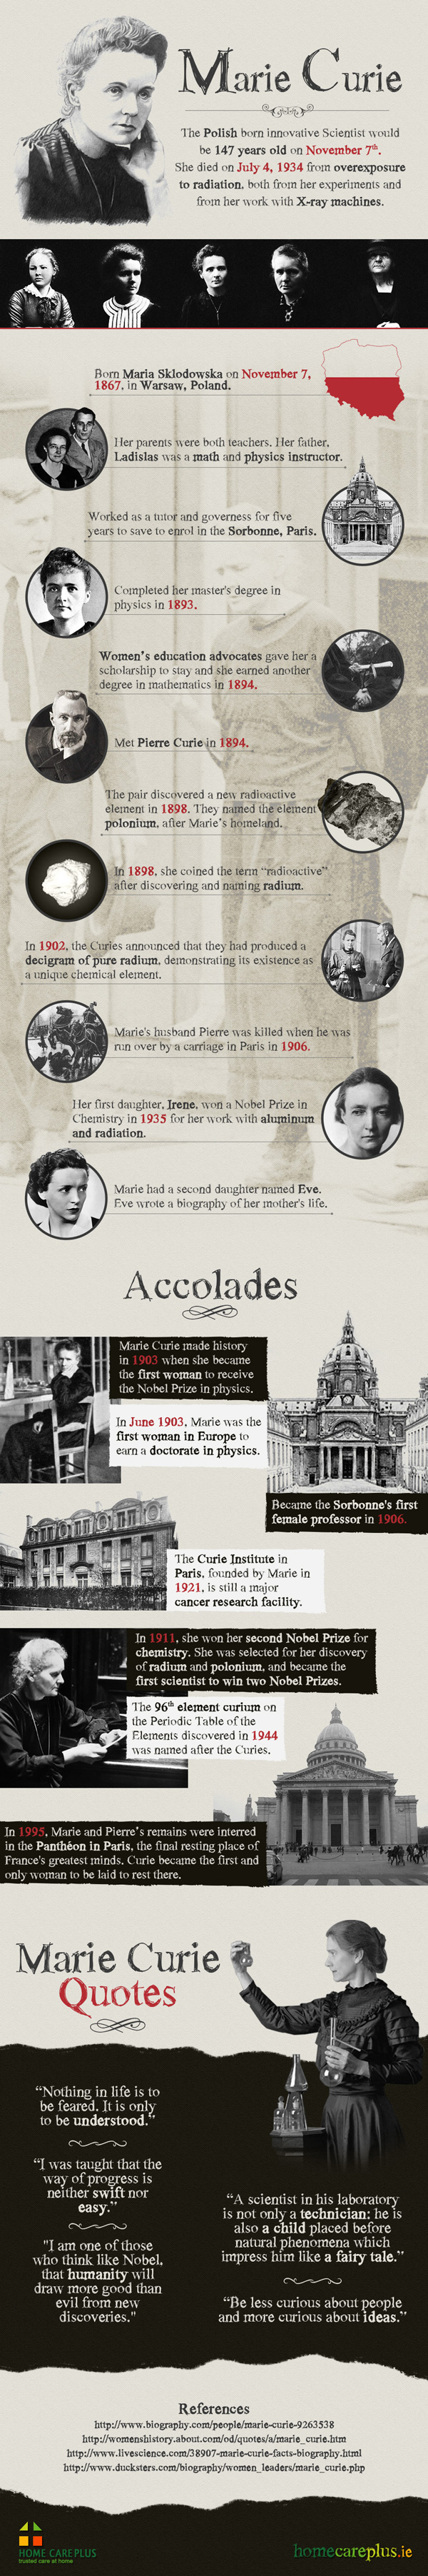 Marie-Curie-Infographic-1